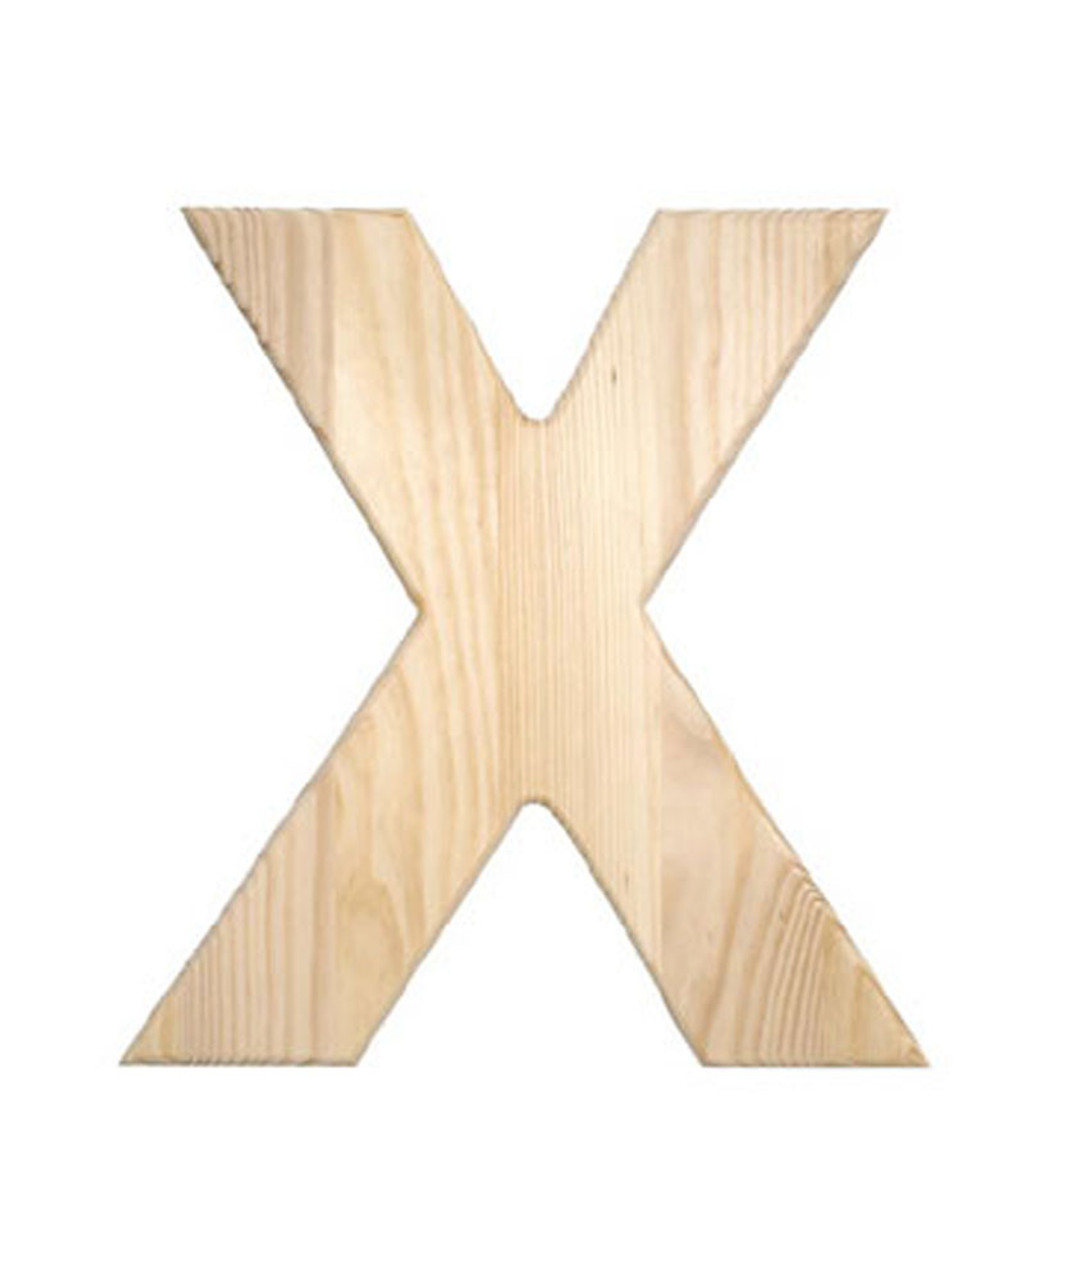 Wooden Letter Unfinished 05 Inch Between 8 11 Inch Letter X